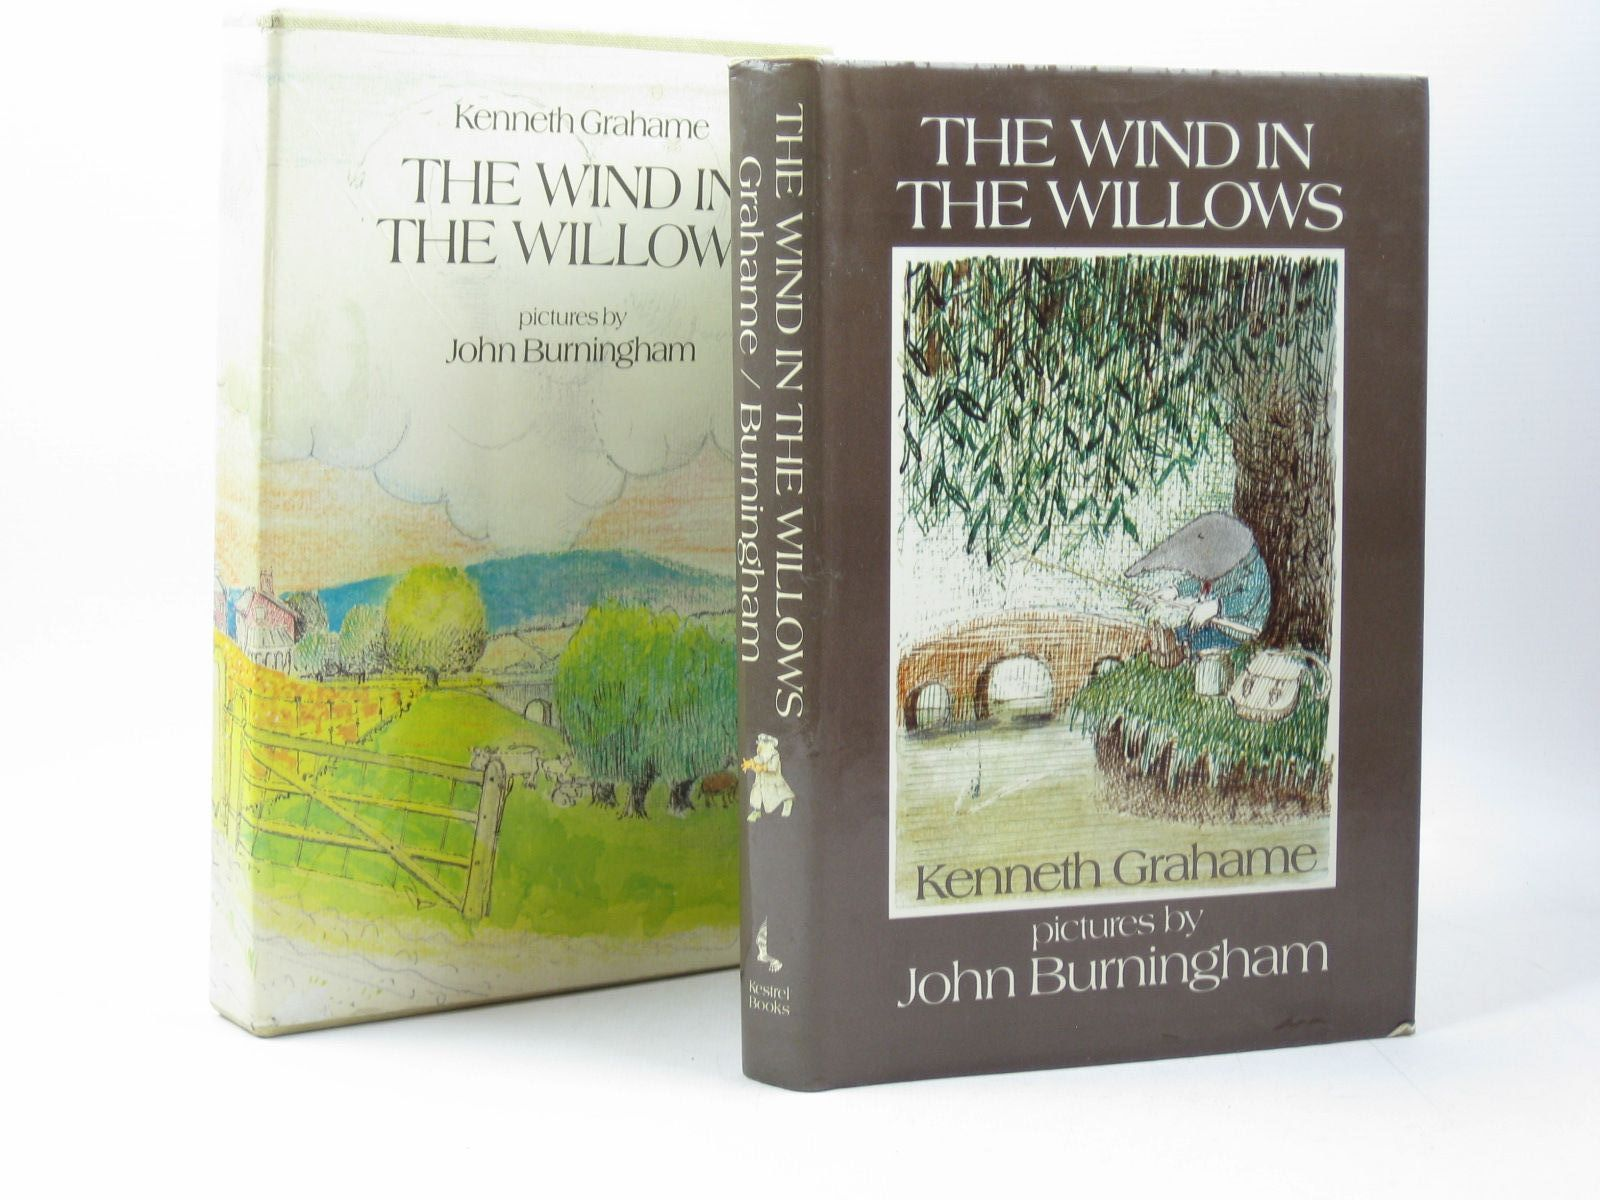 Photo of THE WIND IN THE WILLOWS written by Grahame, Kenneth illustrated by Burningham, John published by Kestrel Books (STOCK CODE: 1313346)  for sale by Stella & Rose's Books